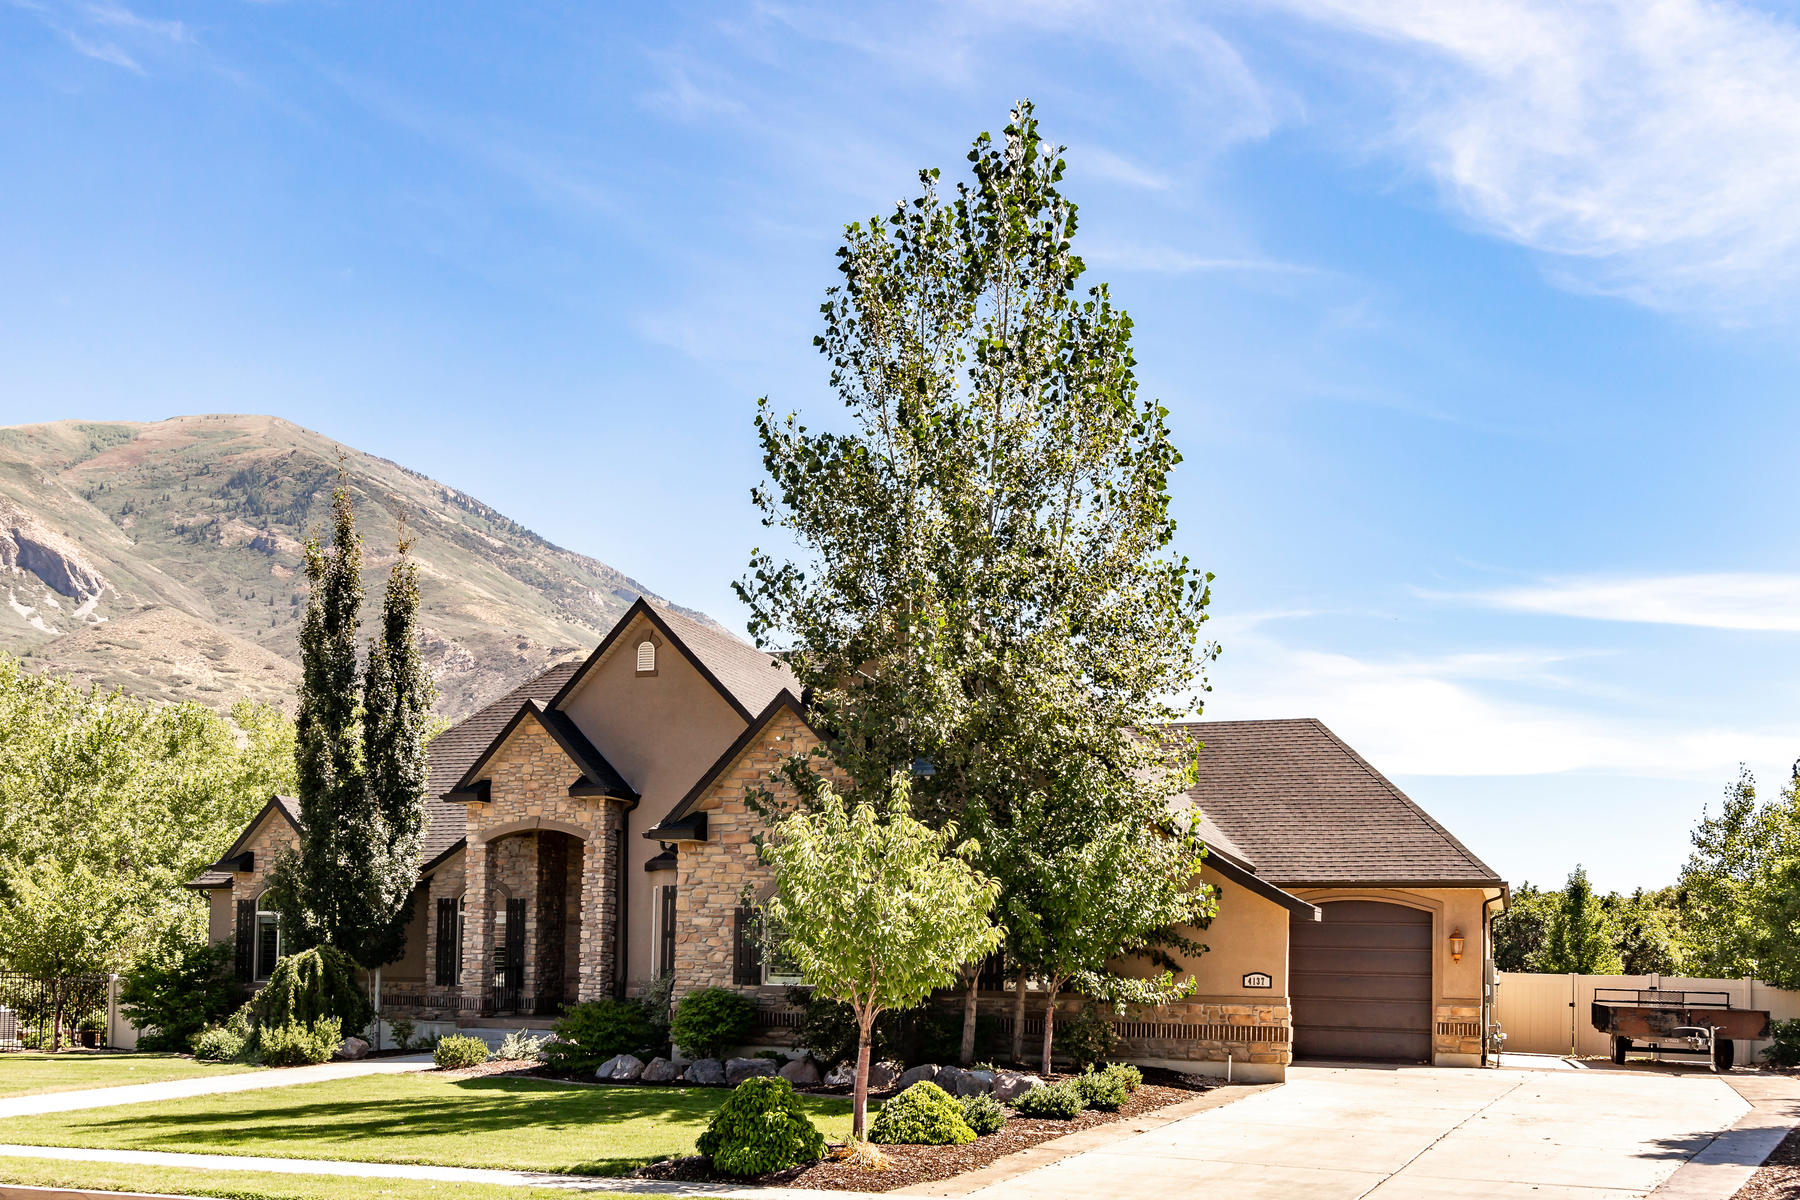 Single Family Homes for Sale at Stunning Mountain Views with High End Upgrades Throughout 4137 W Mesquite Way, Cedar Hills, Utah 84062 United States